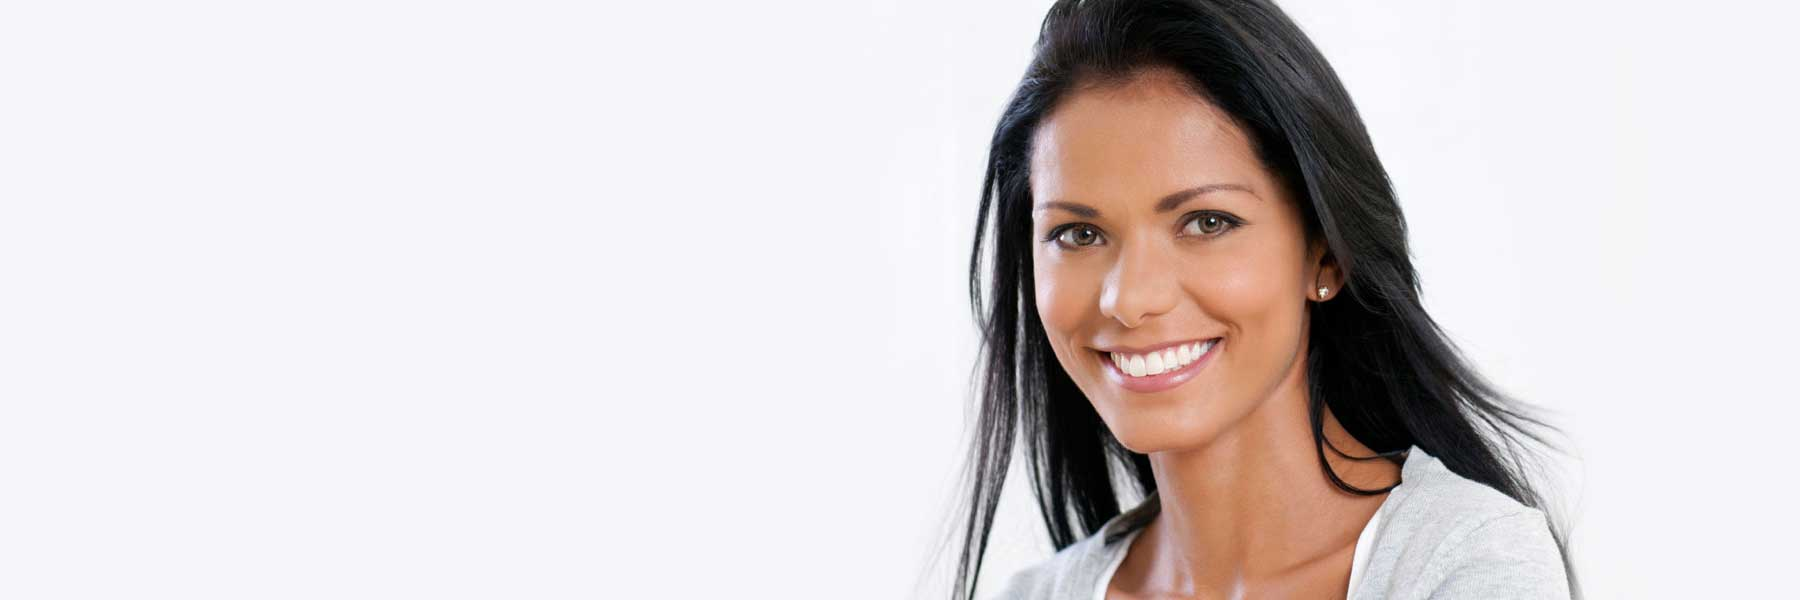 Root Canal Treatment in Calgary, AB banner image